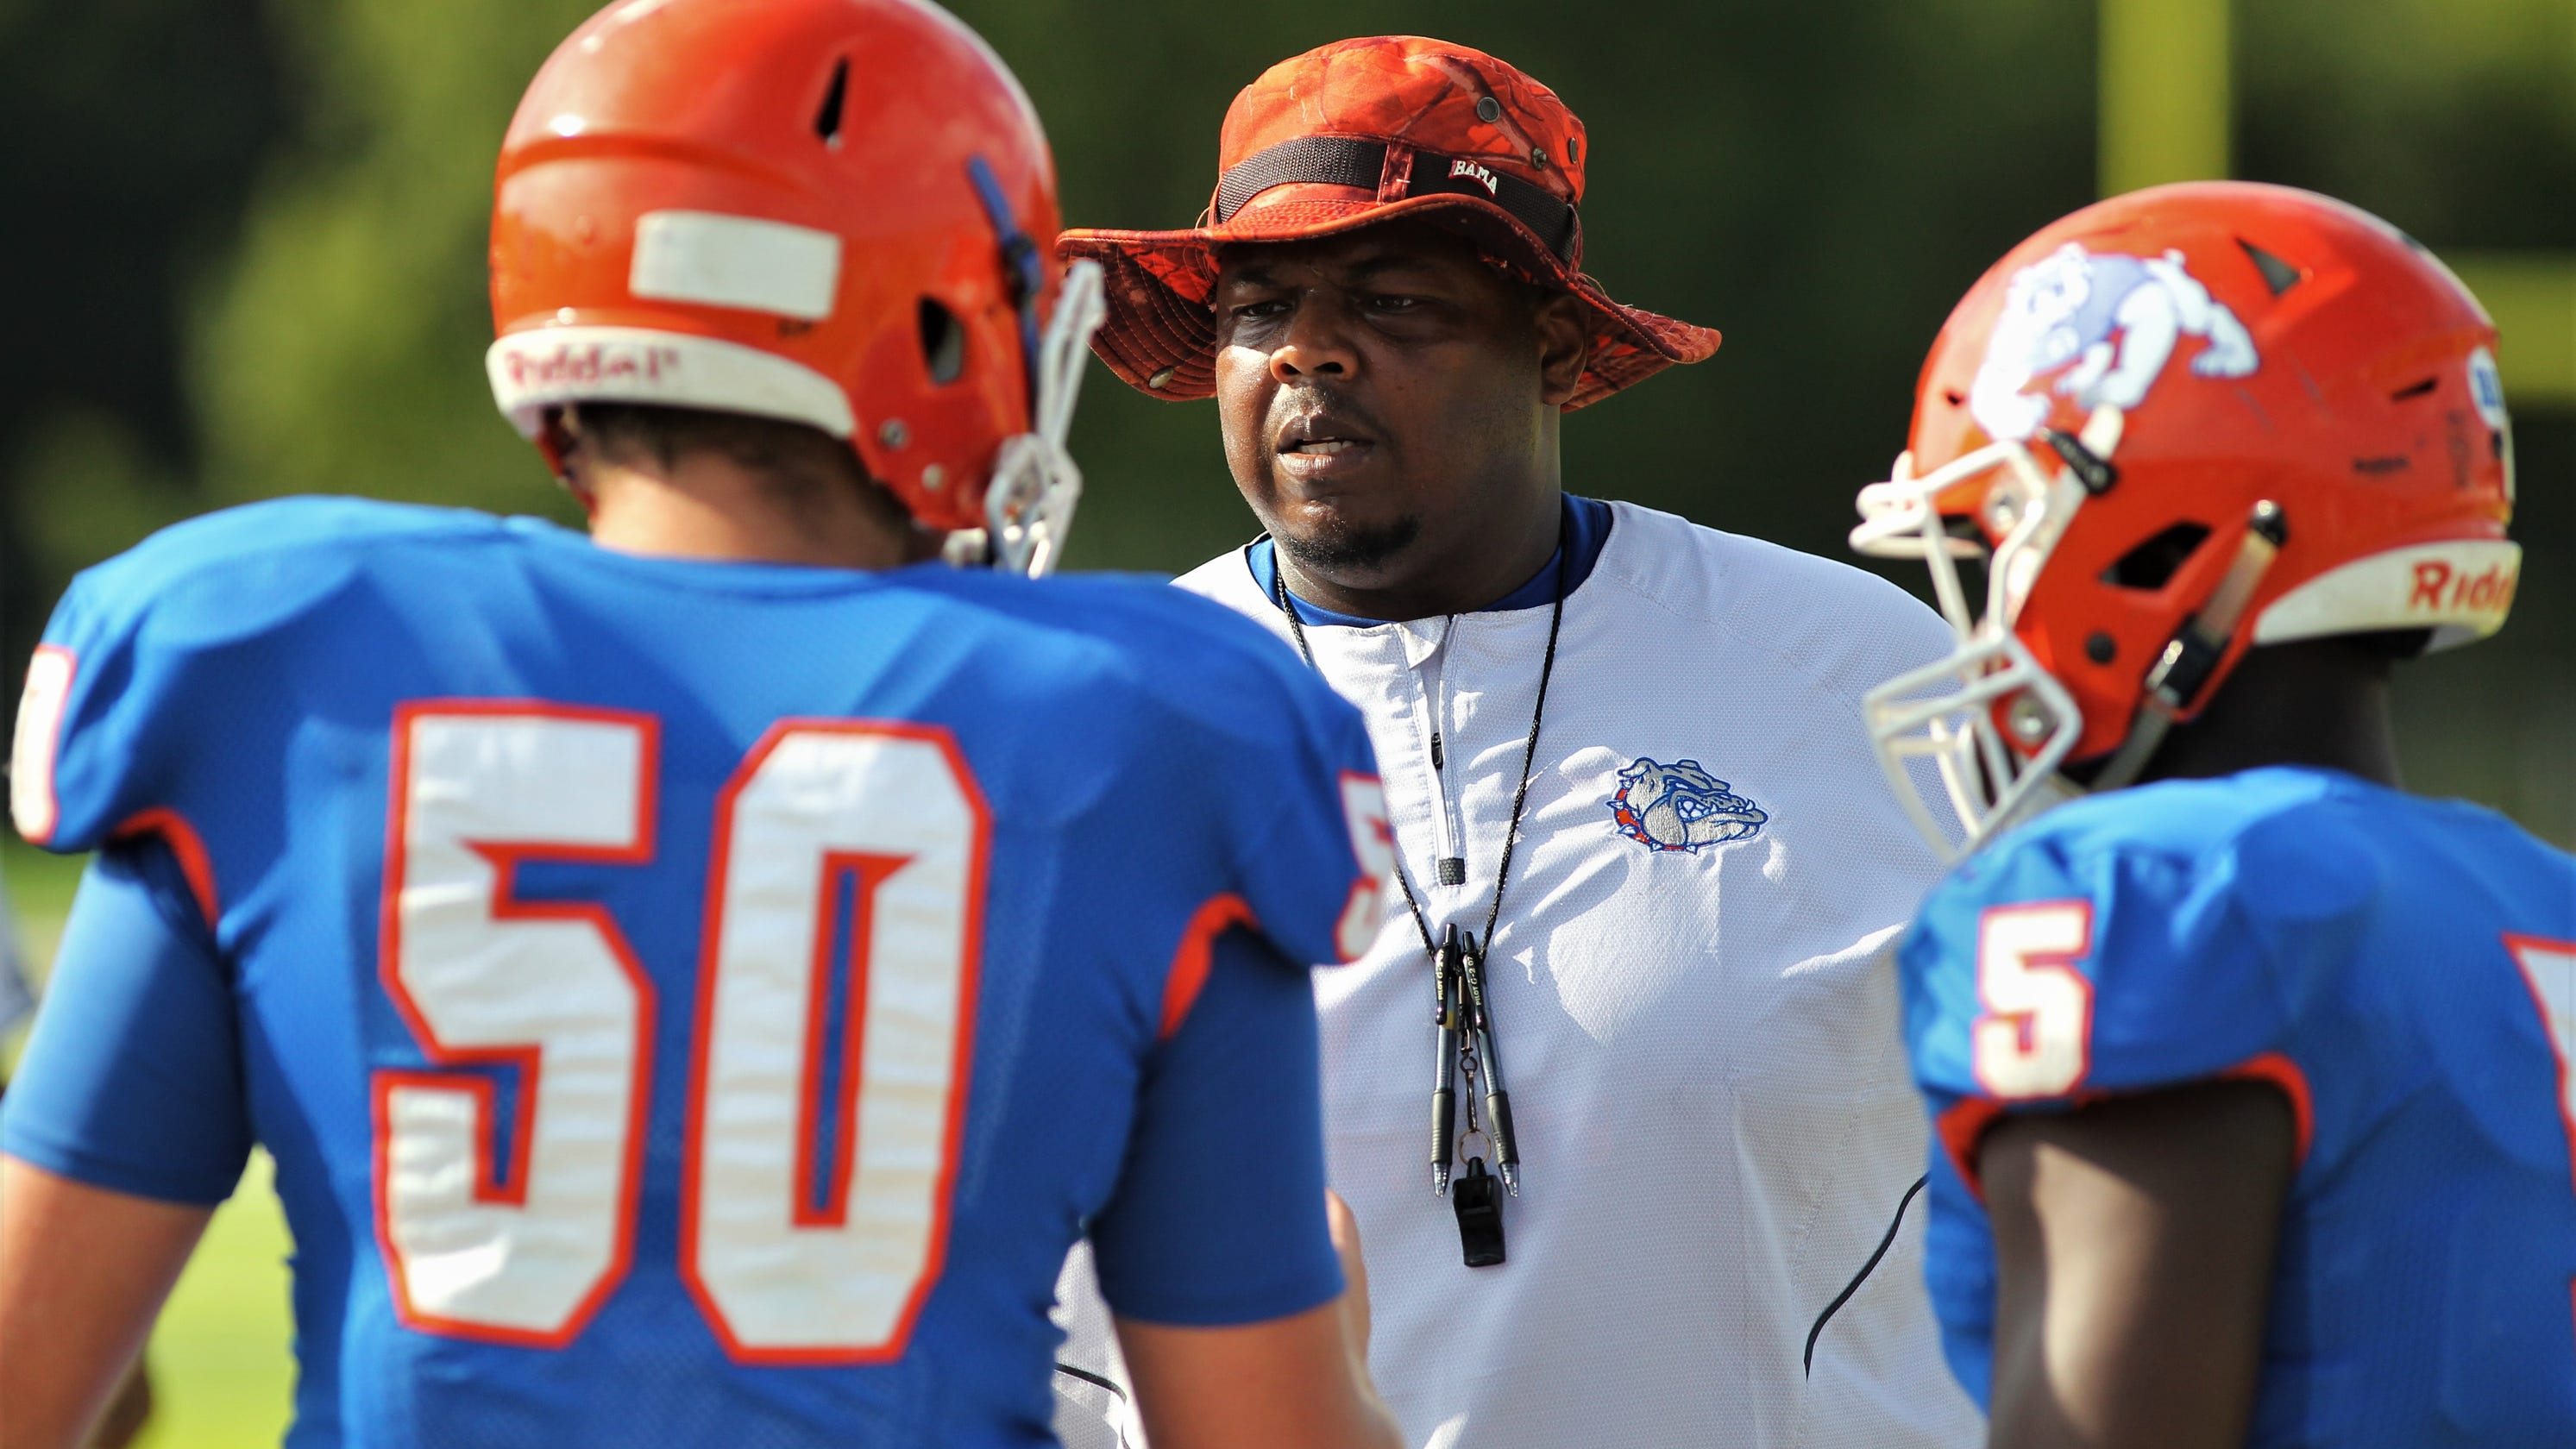 Football: New HS coach in Florida quits after player protest